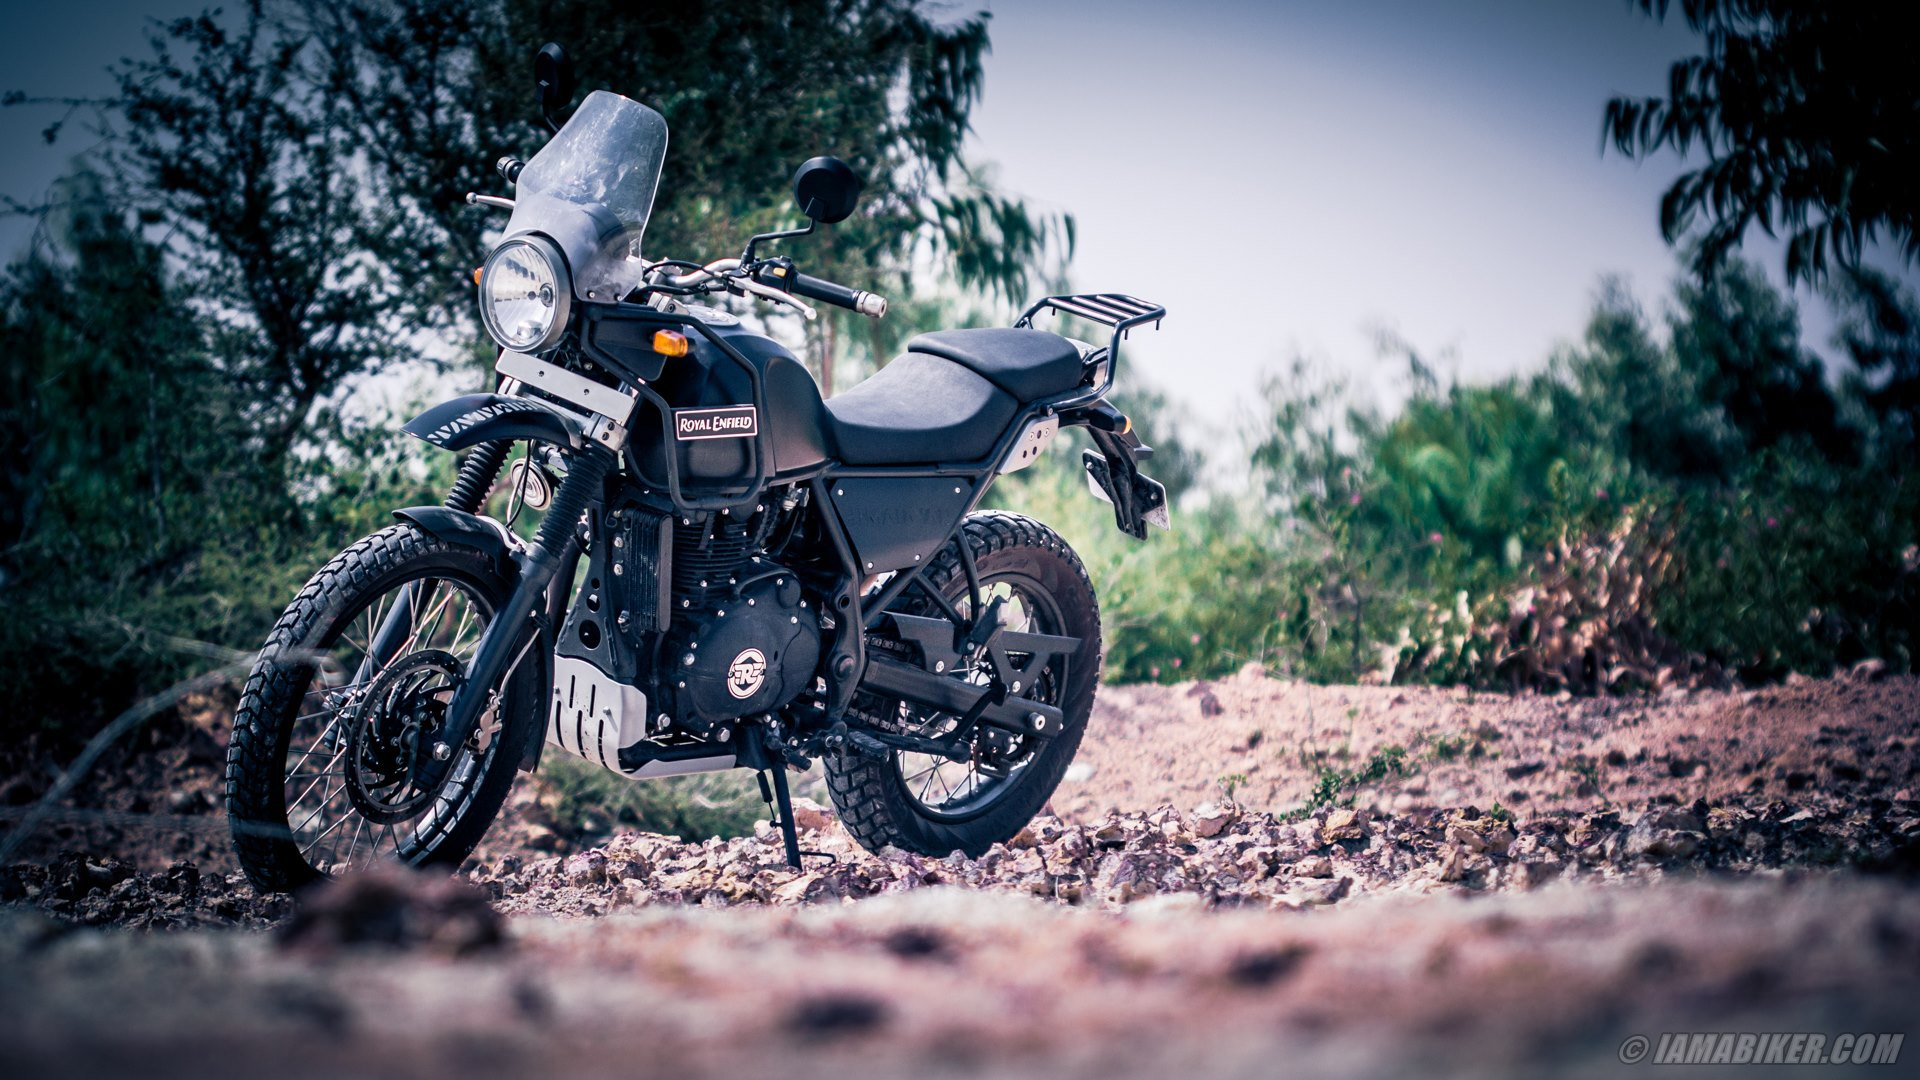 3d Live Wallpaper Mobile9 Download Royal Enfield Images Wallpapers Gallery